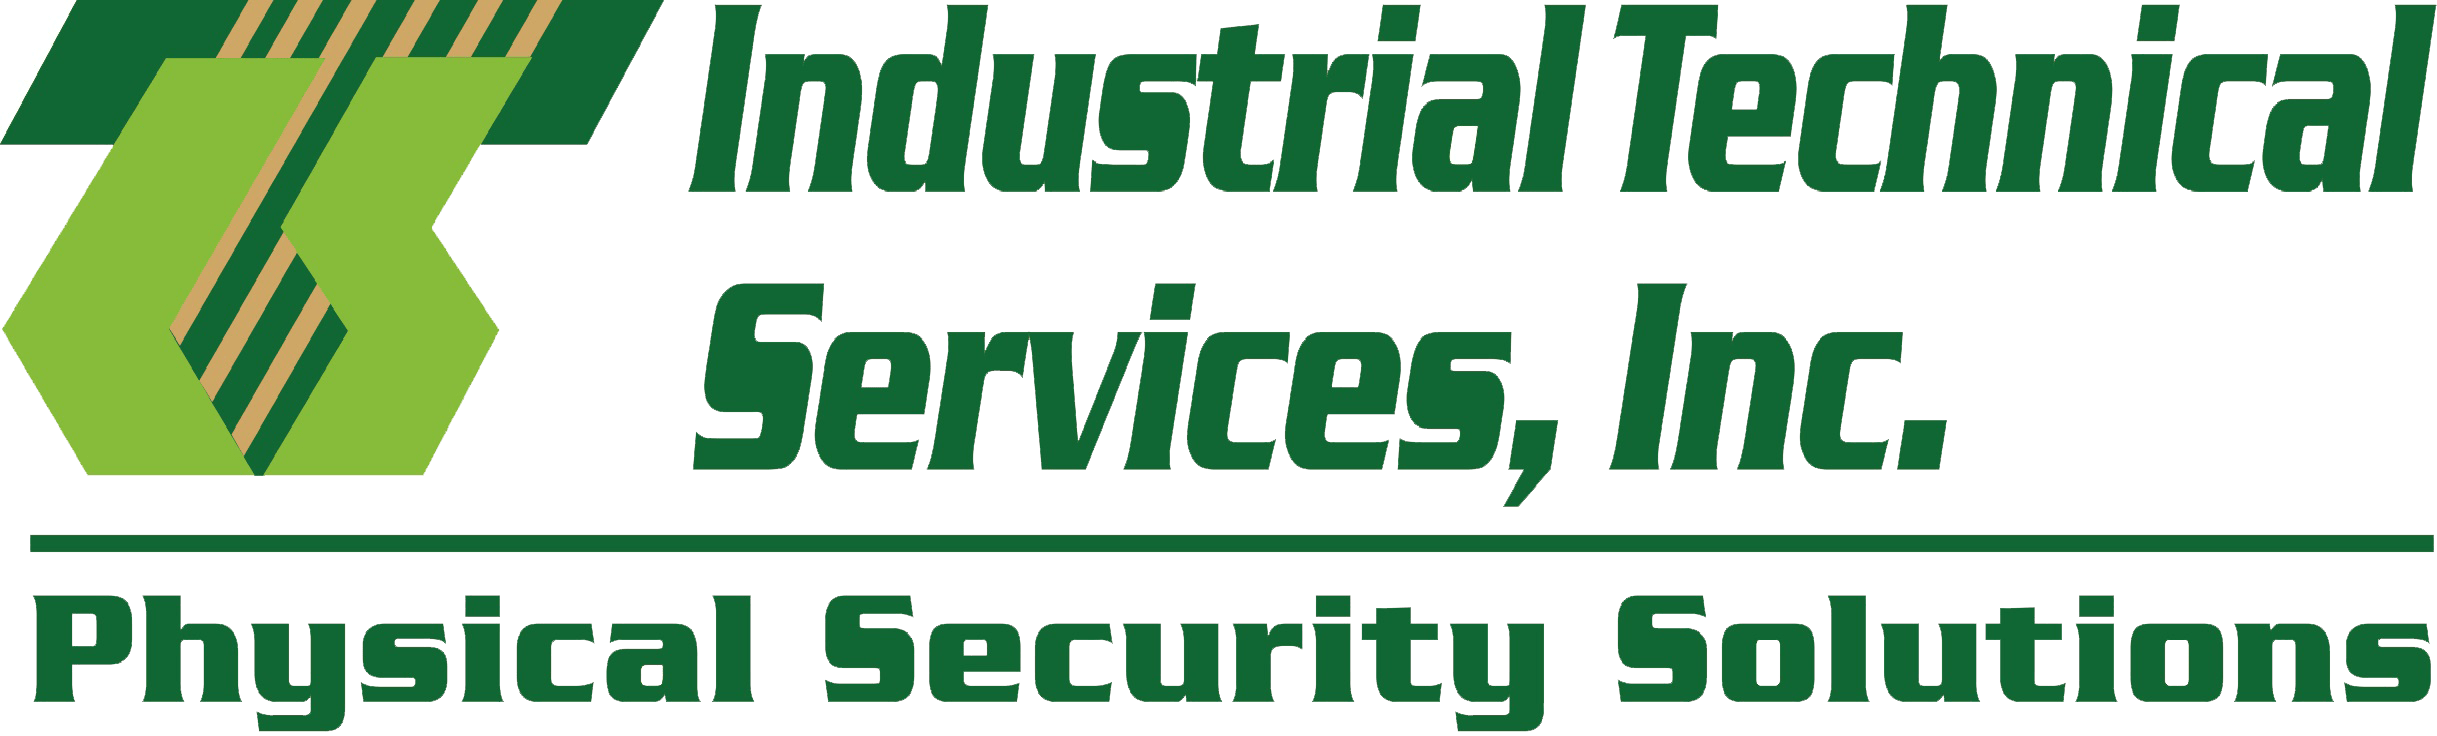 Industrial technical services logo